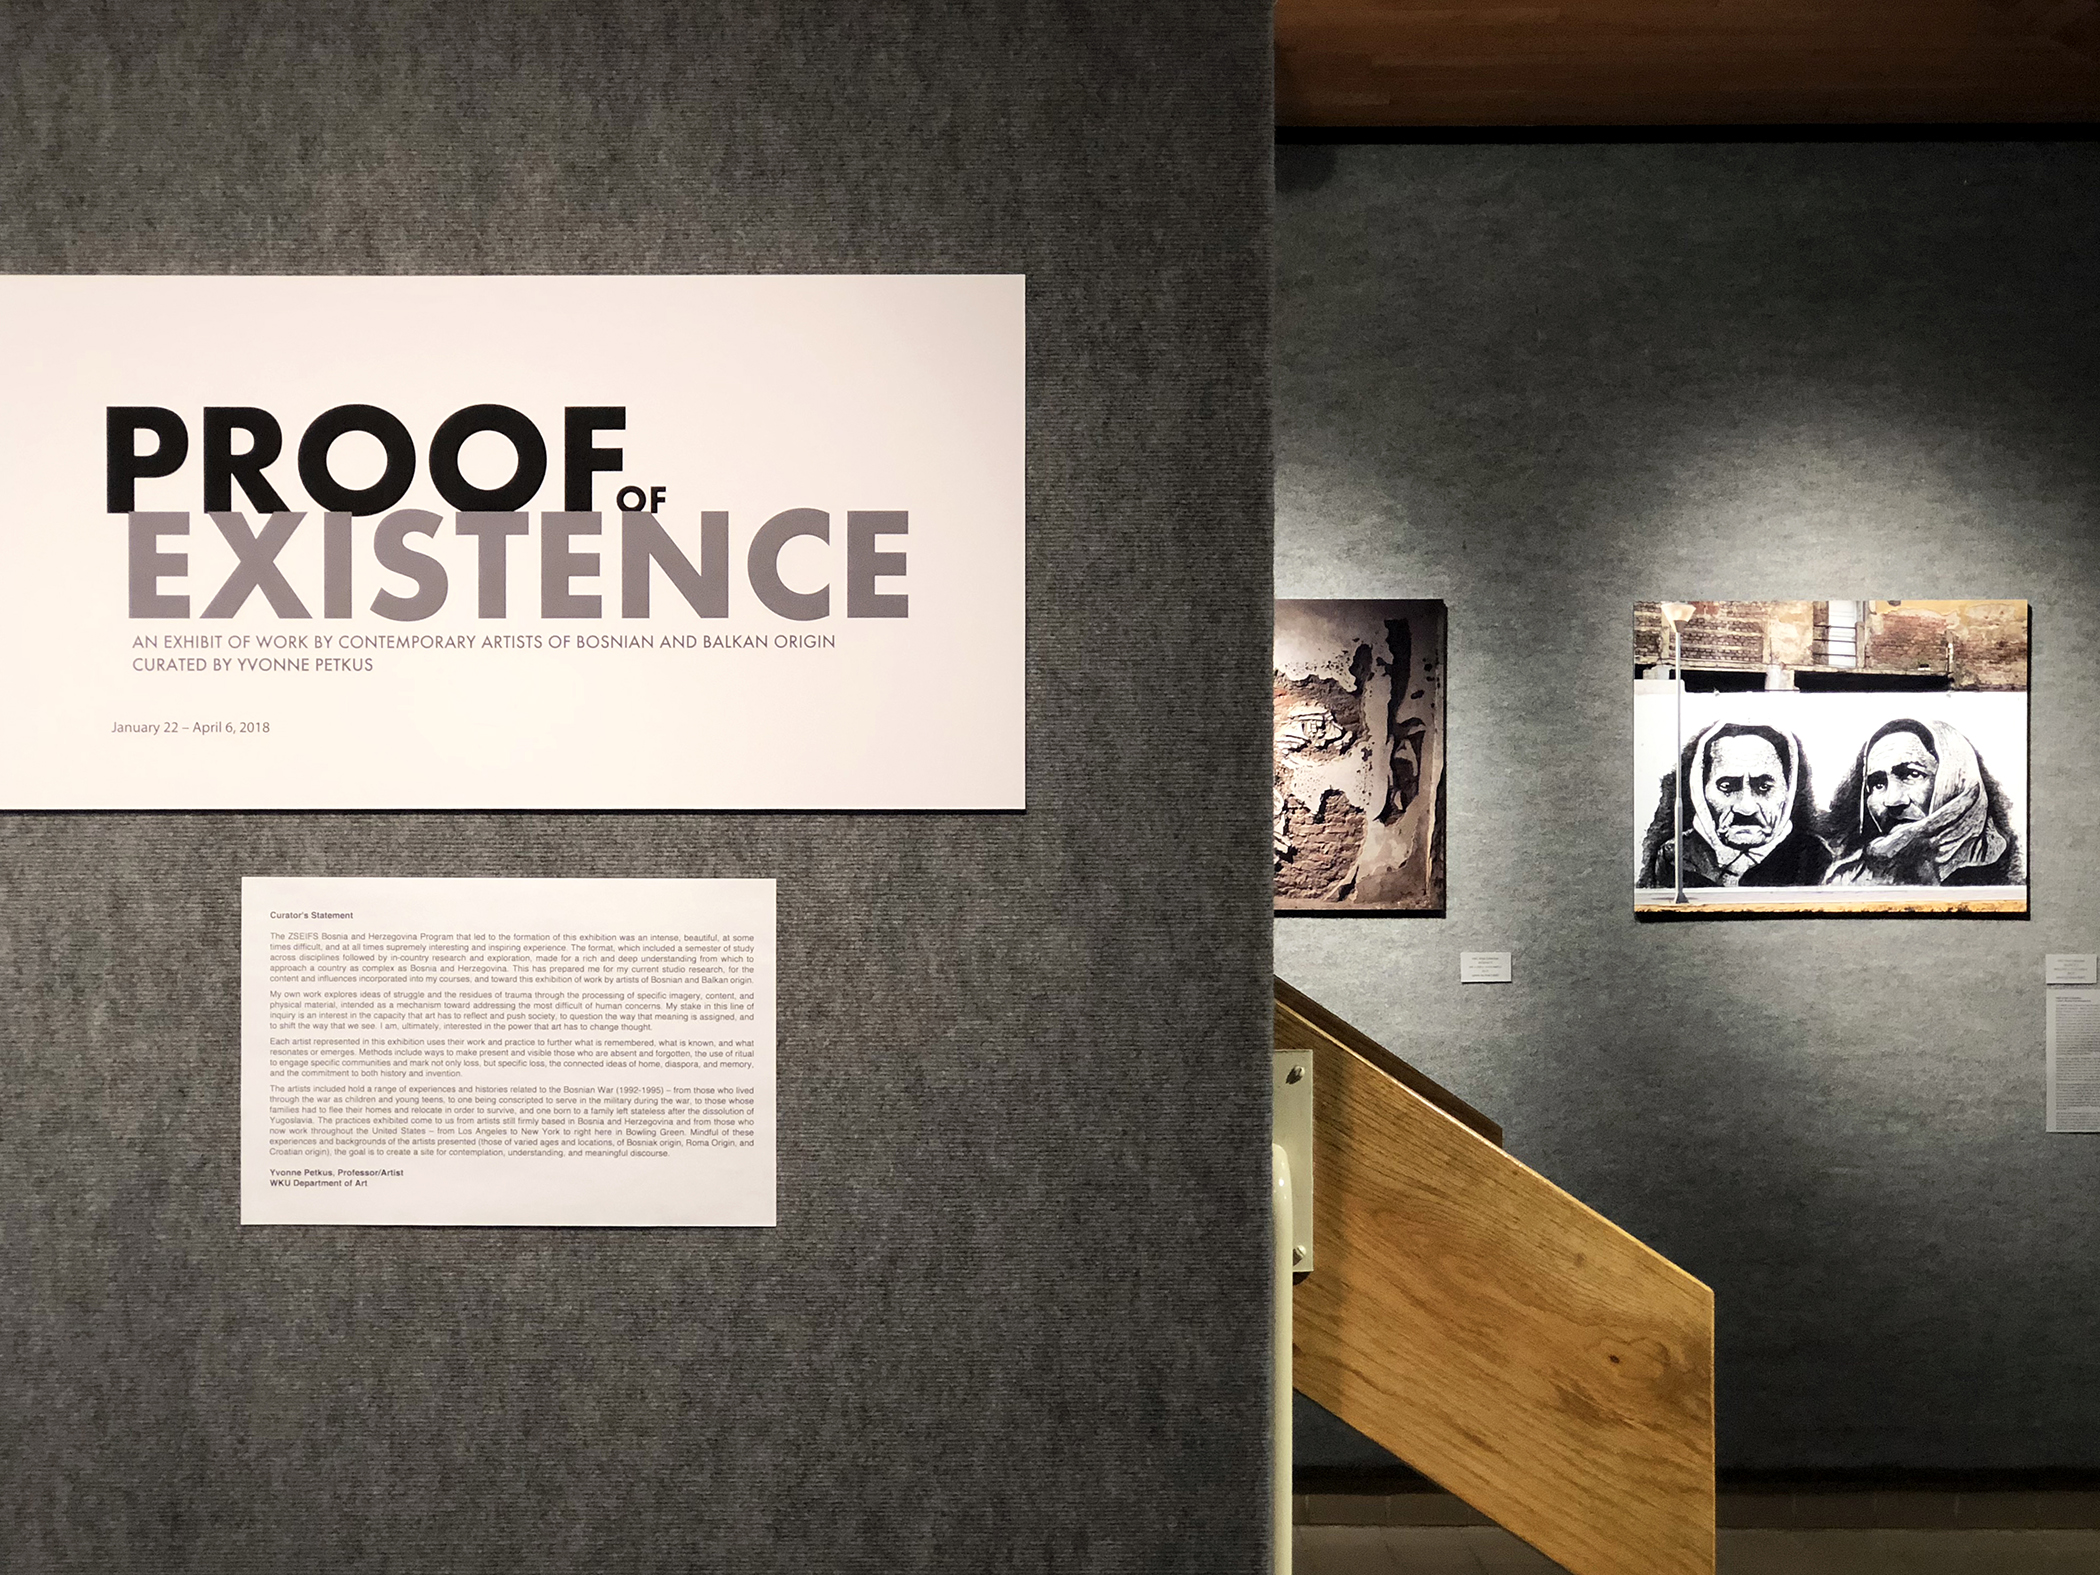 images of work by HAD Artist Collective in 'Proof of Existence' at Western Kentucky University – 'Serenity' (left), 'Silence' (right)